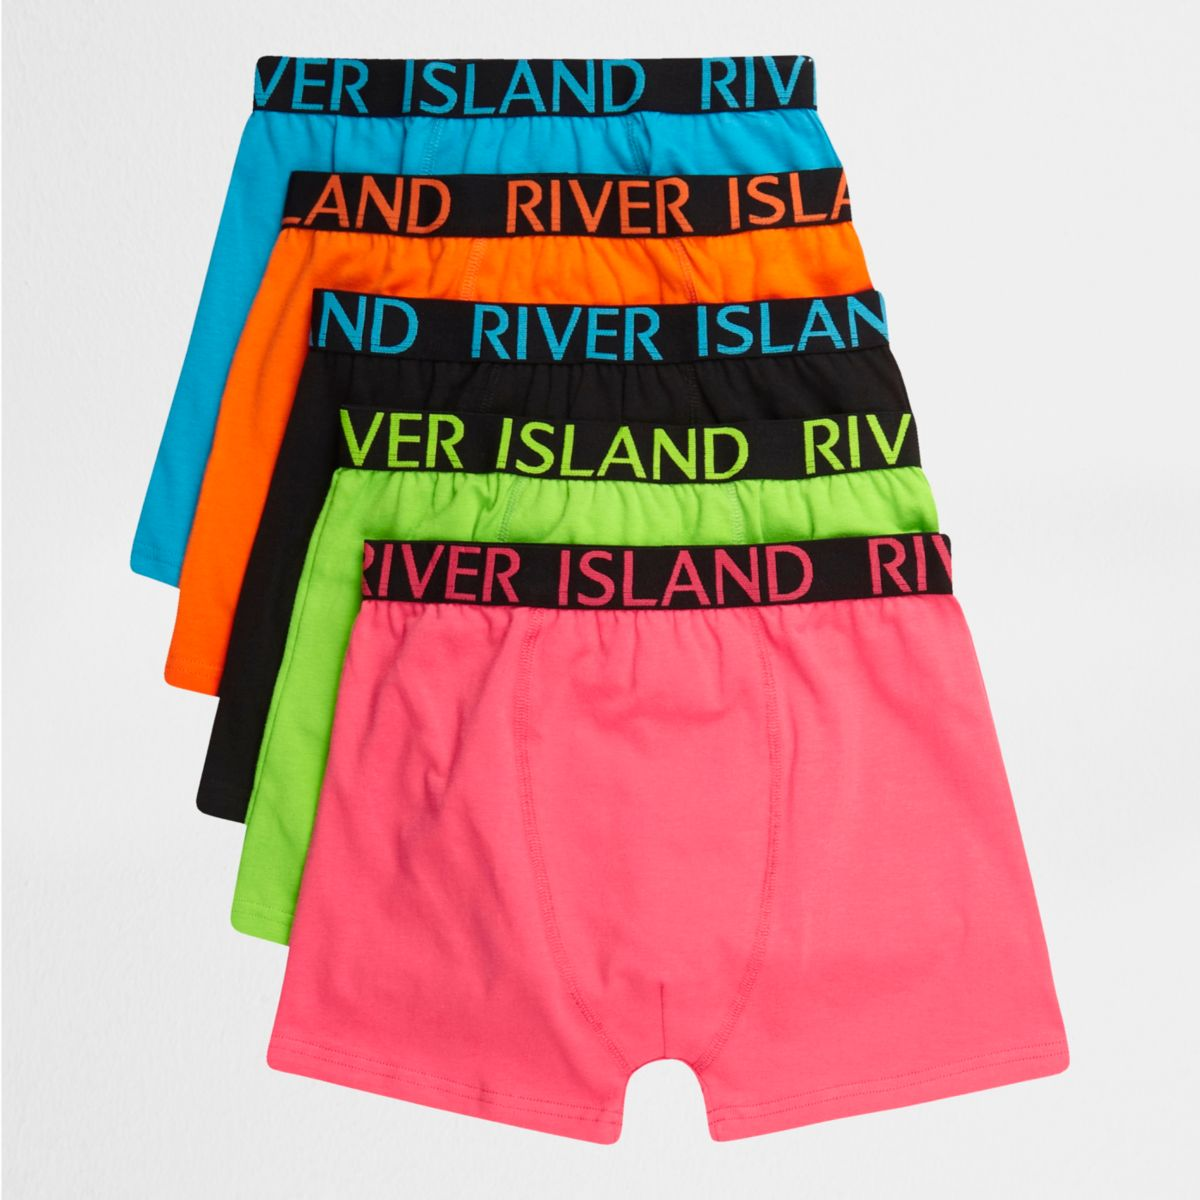 Boys pink bright color boxers multipack